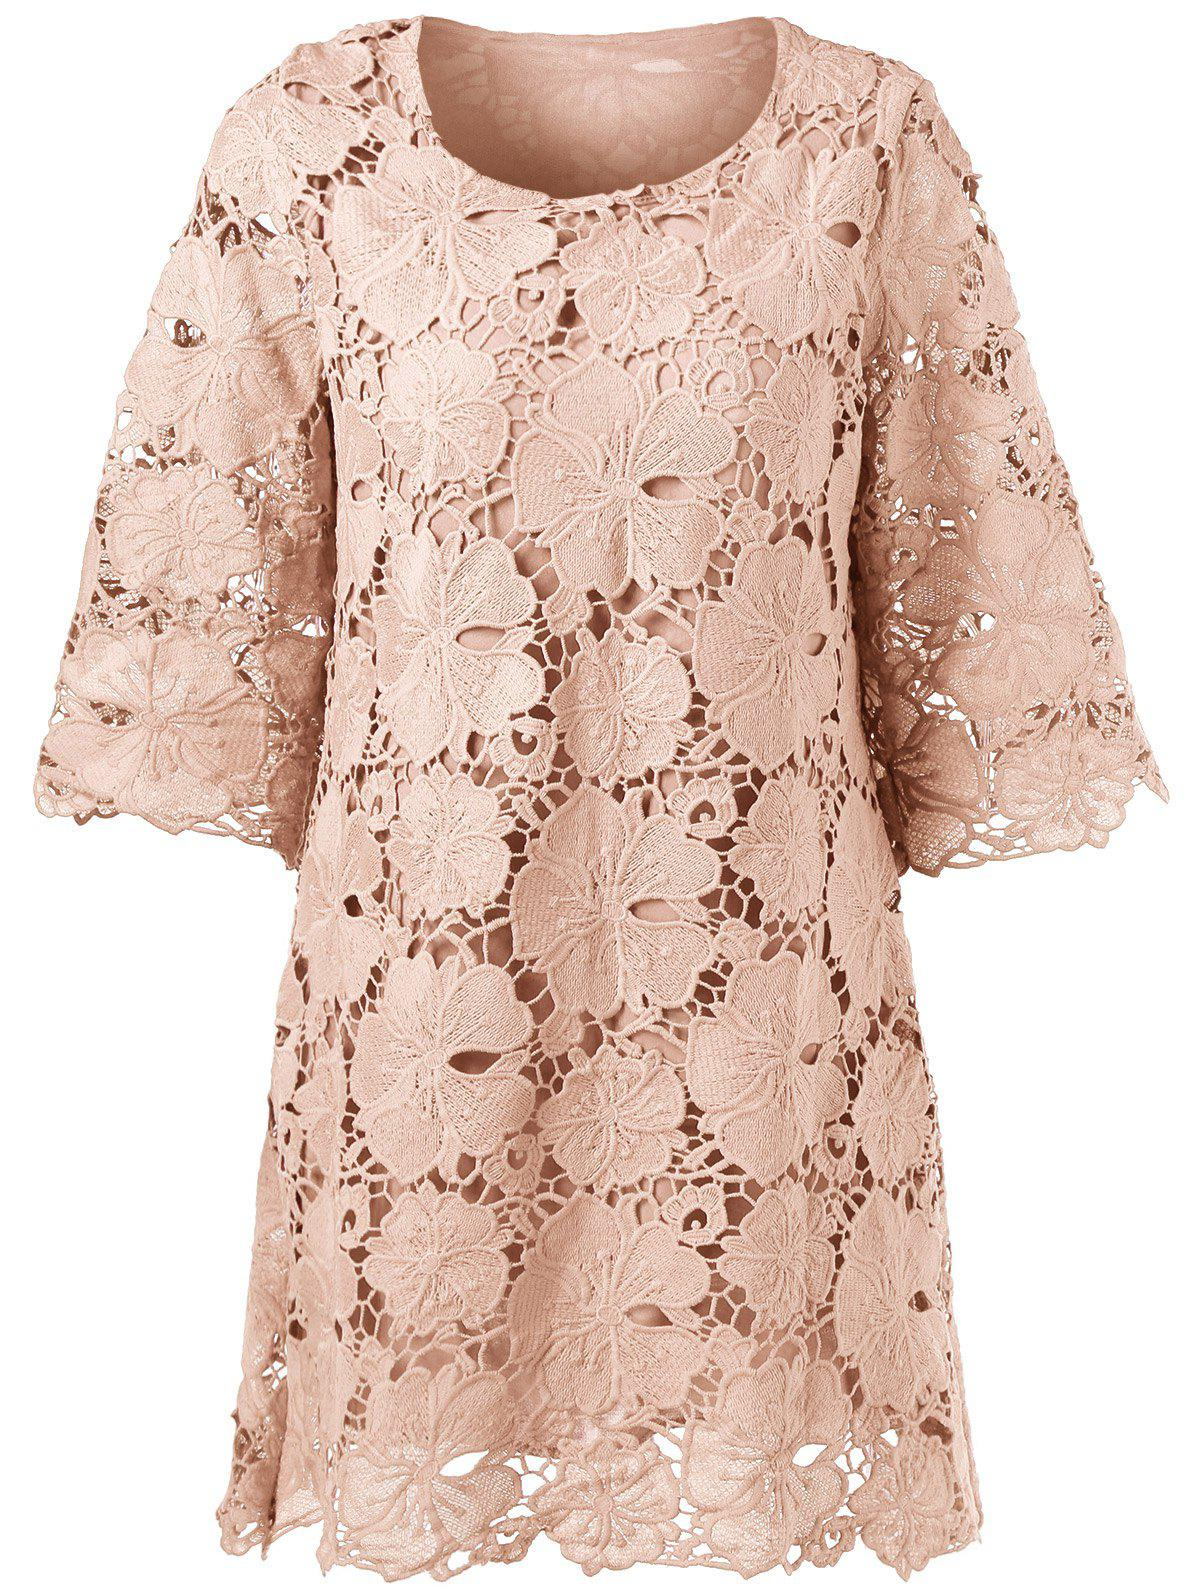 Sheer Lace Floral Overlay Shift Dress - APRICOT M